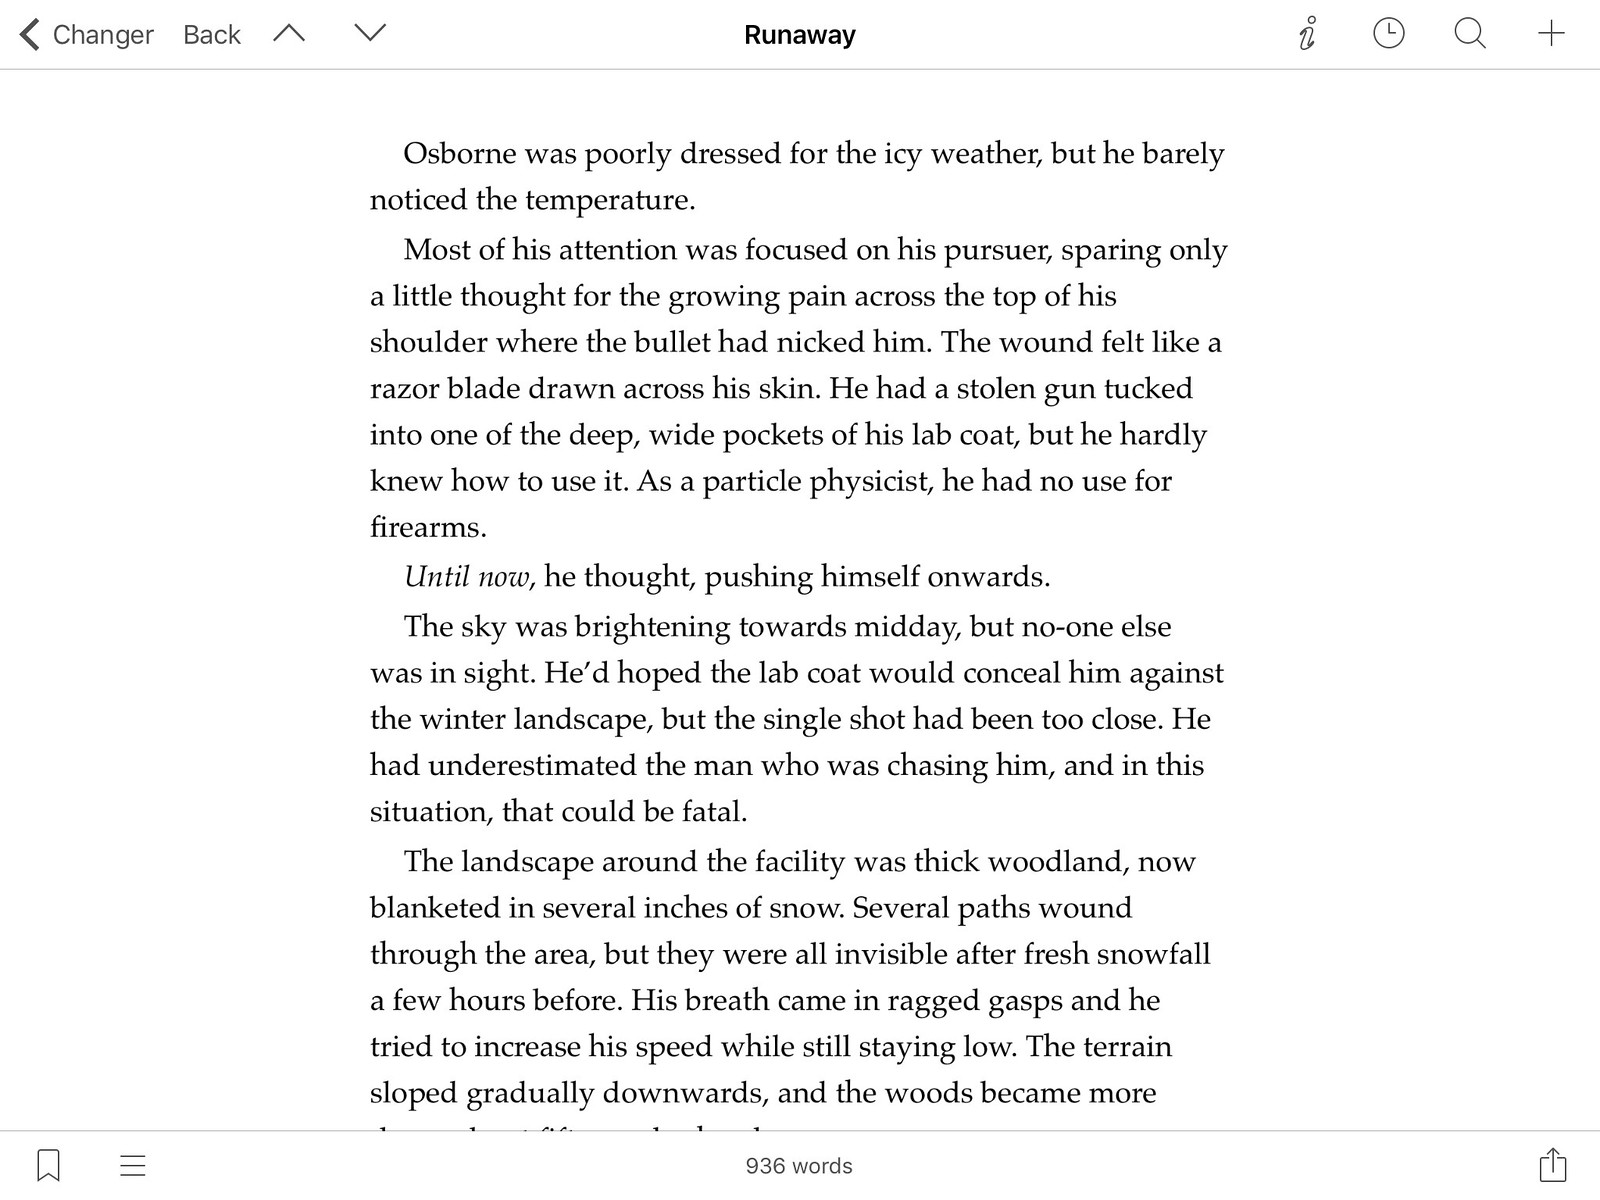 Scrivener on iPad, in full screen editing mode